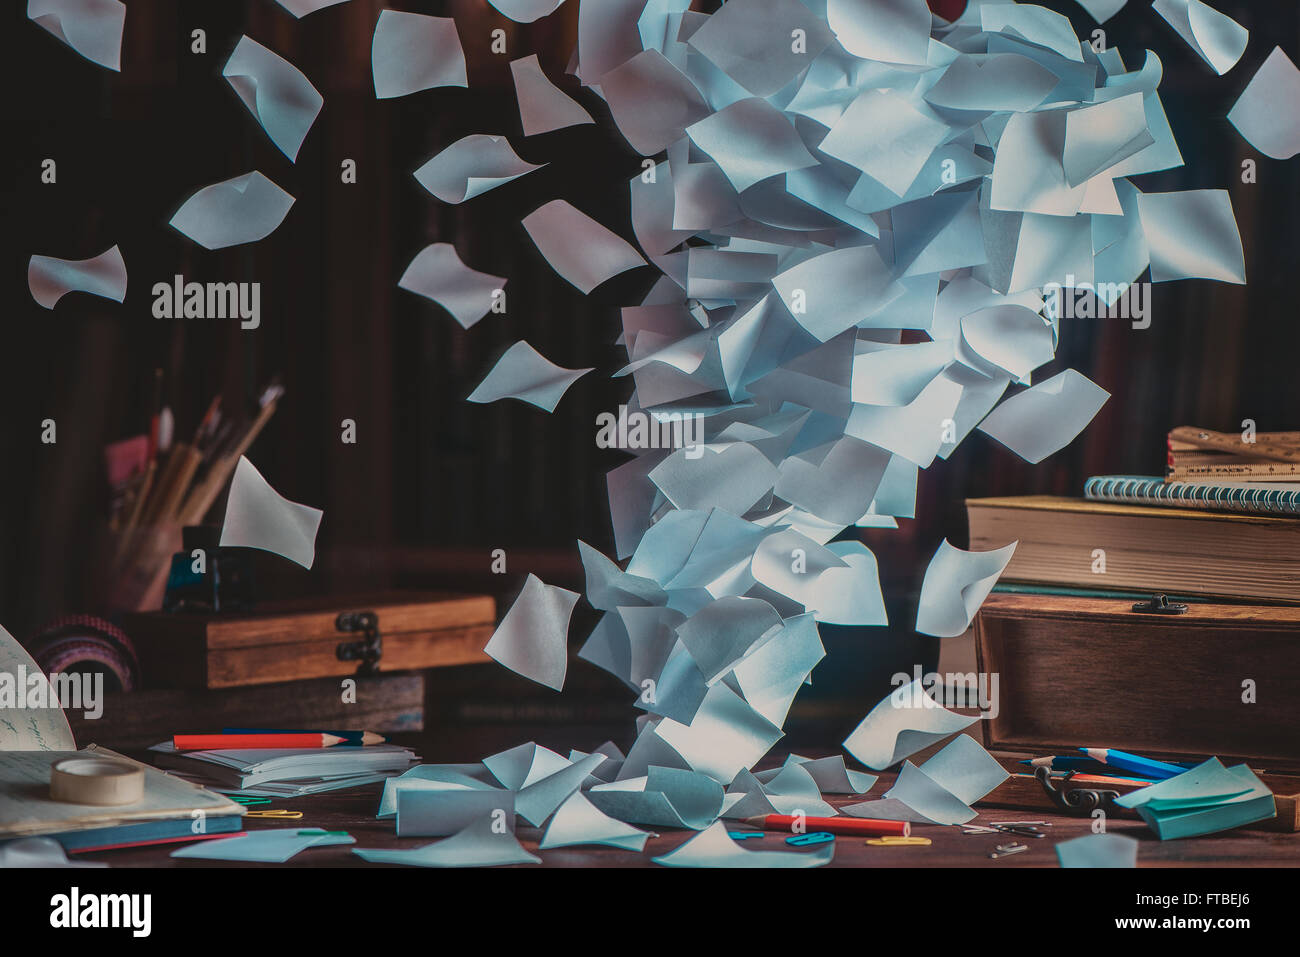 All my notes - Stock Image